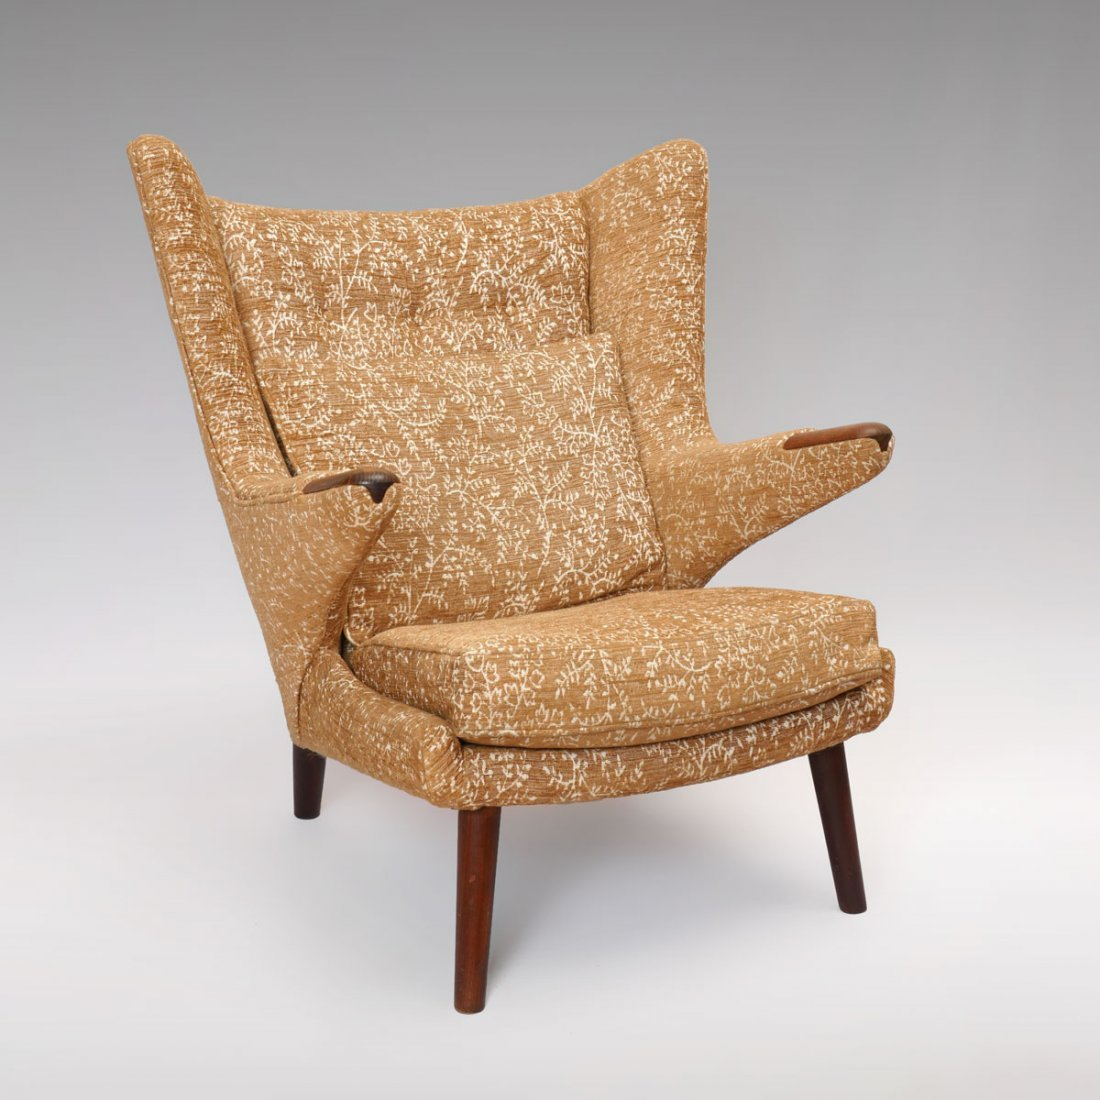 "HANS WEGNER ATTRIBUTED ""PaPa BEAR"" CHAIR"